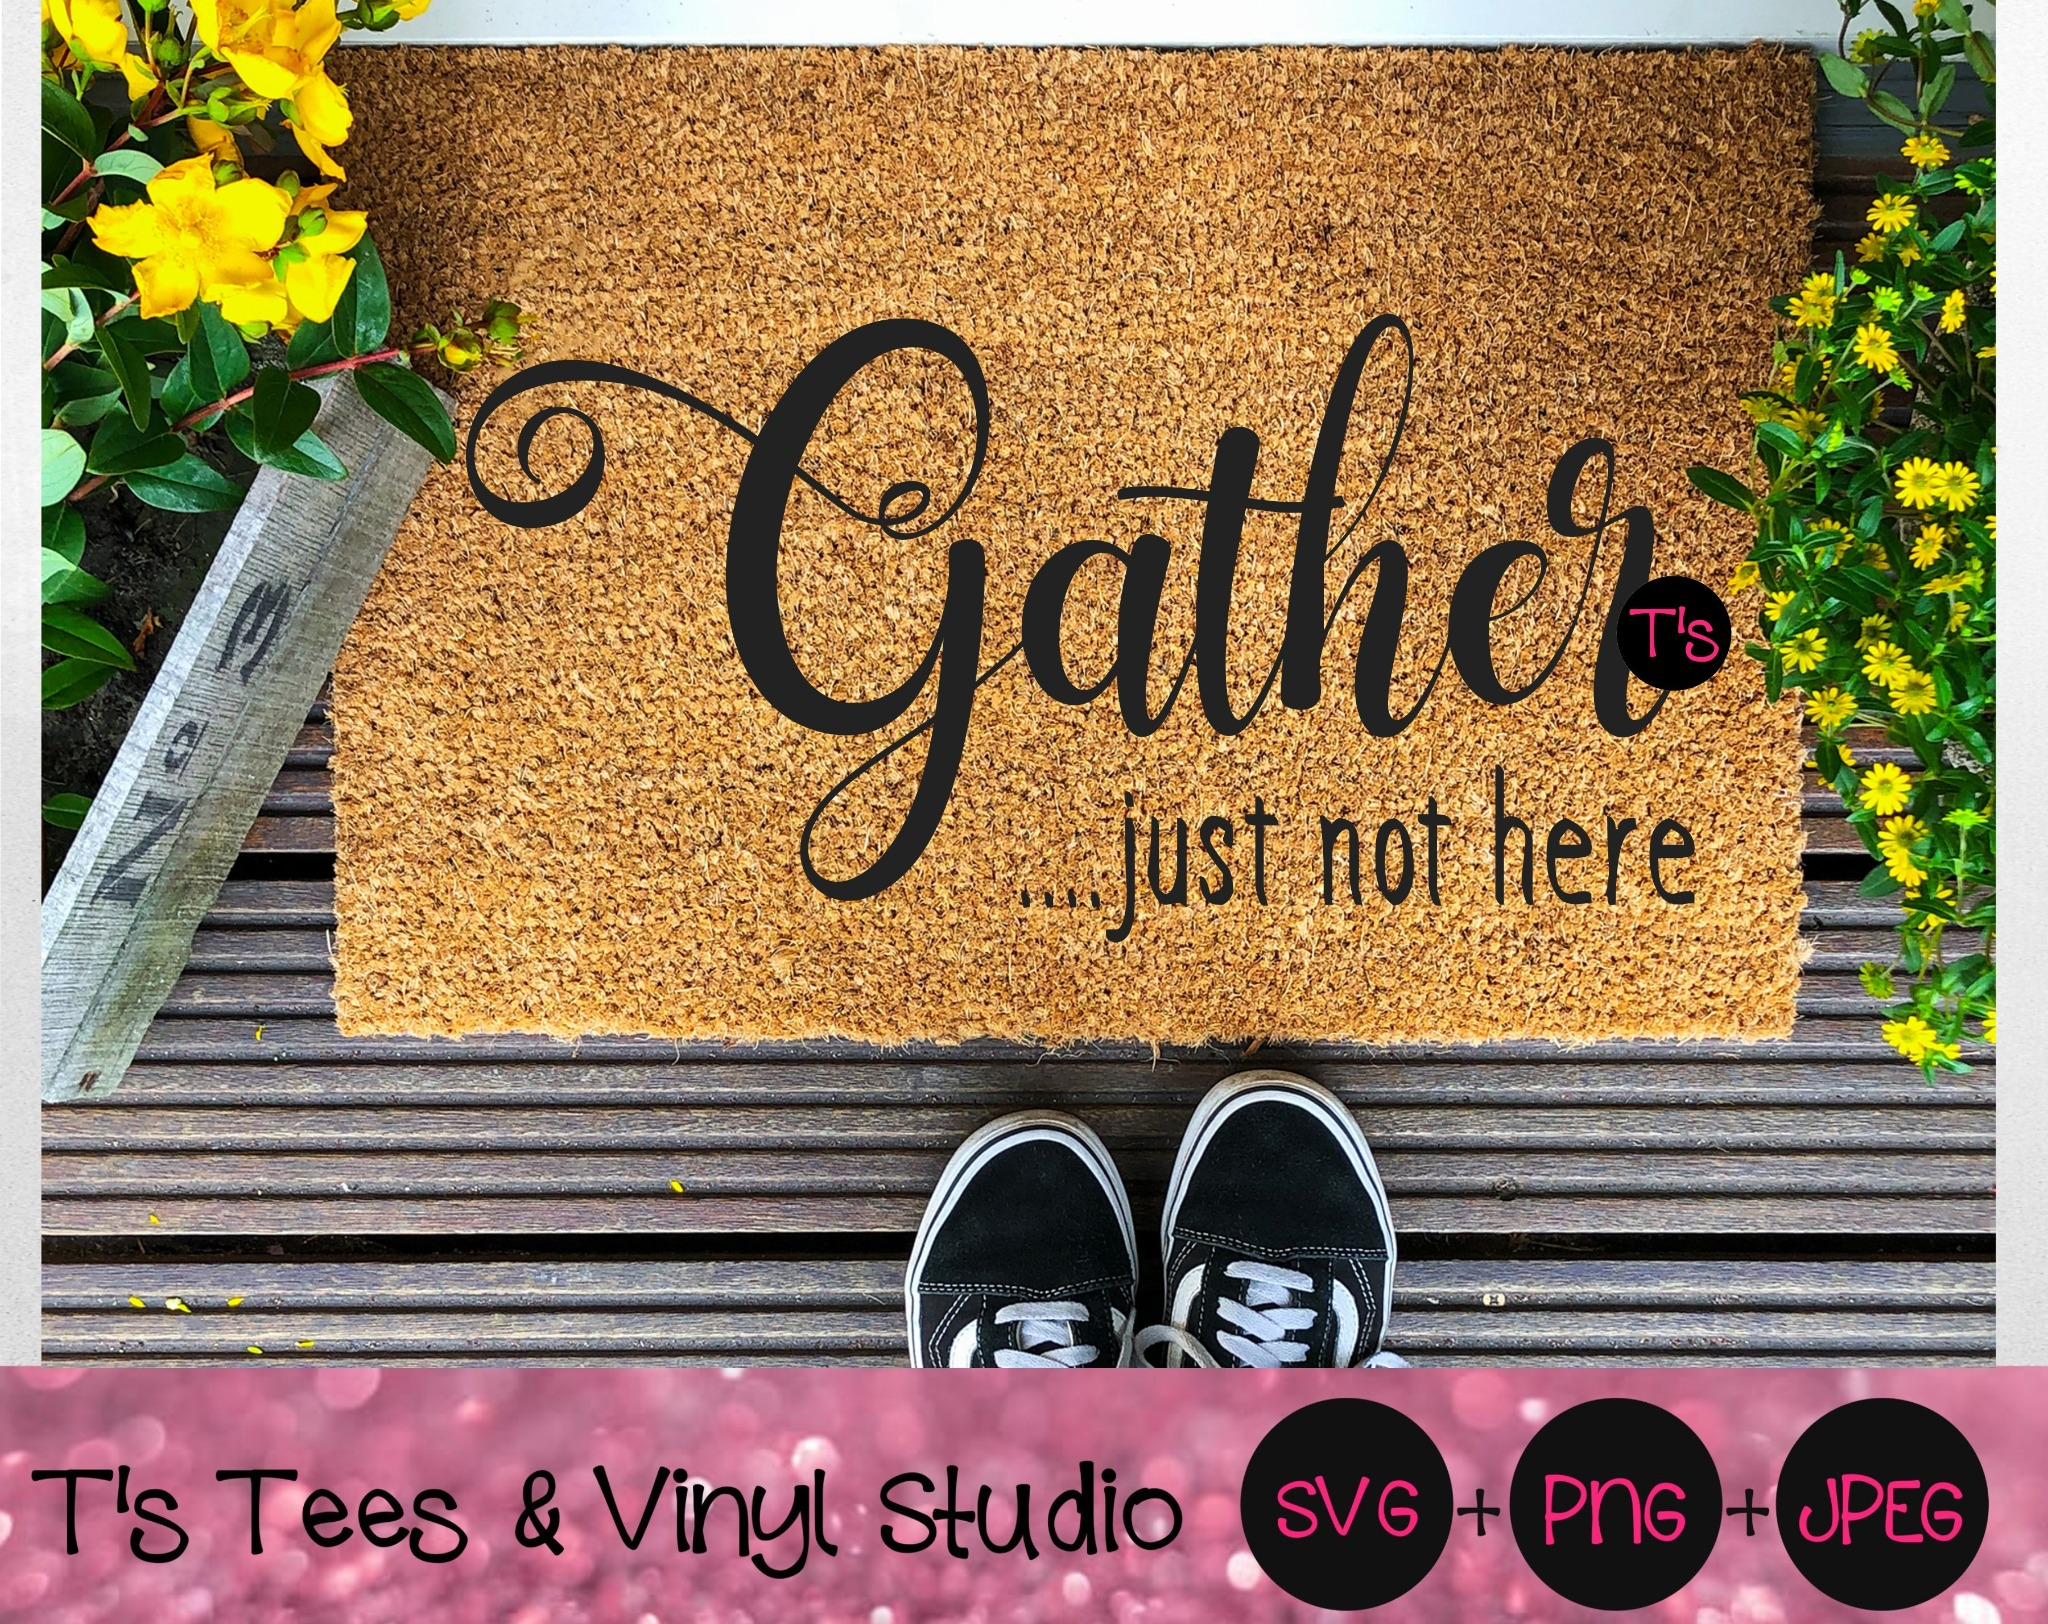 Gather Svg, Gather....just not here Svg, Welcome Svg, Not Welcome Svg, Funny Doormat, Sarcastic Door